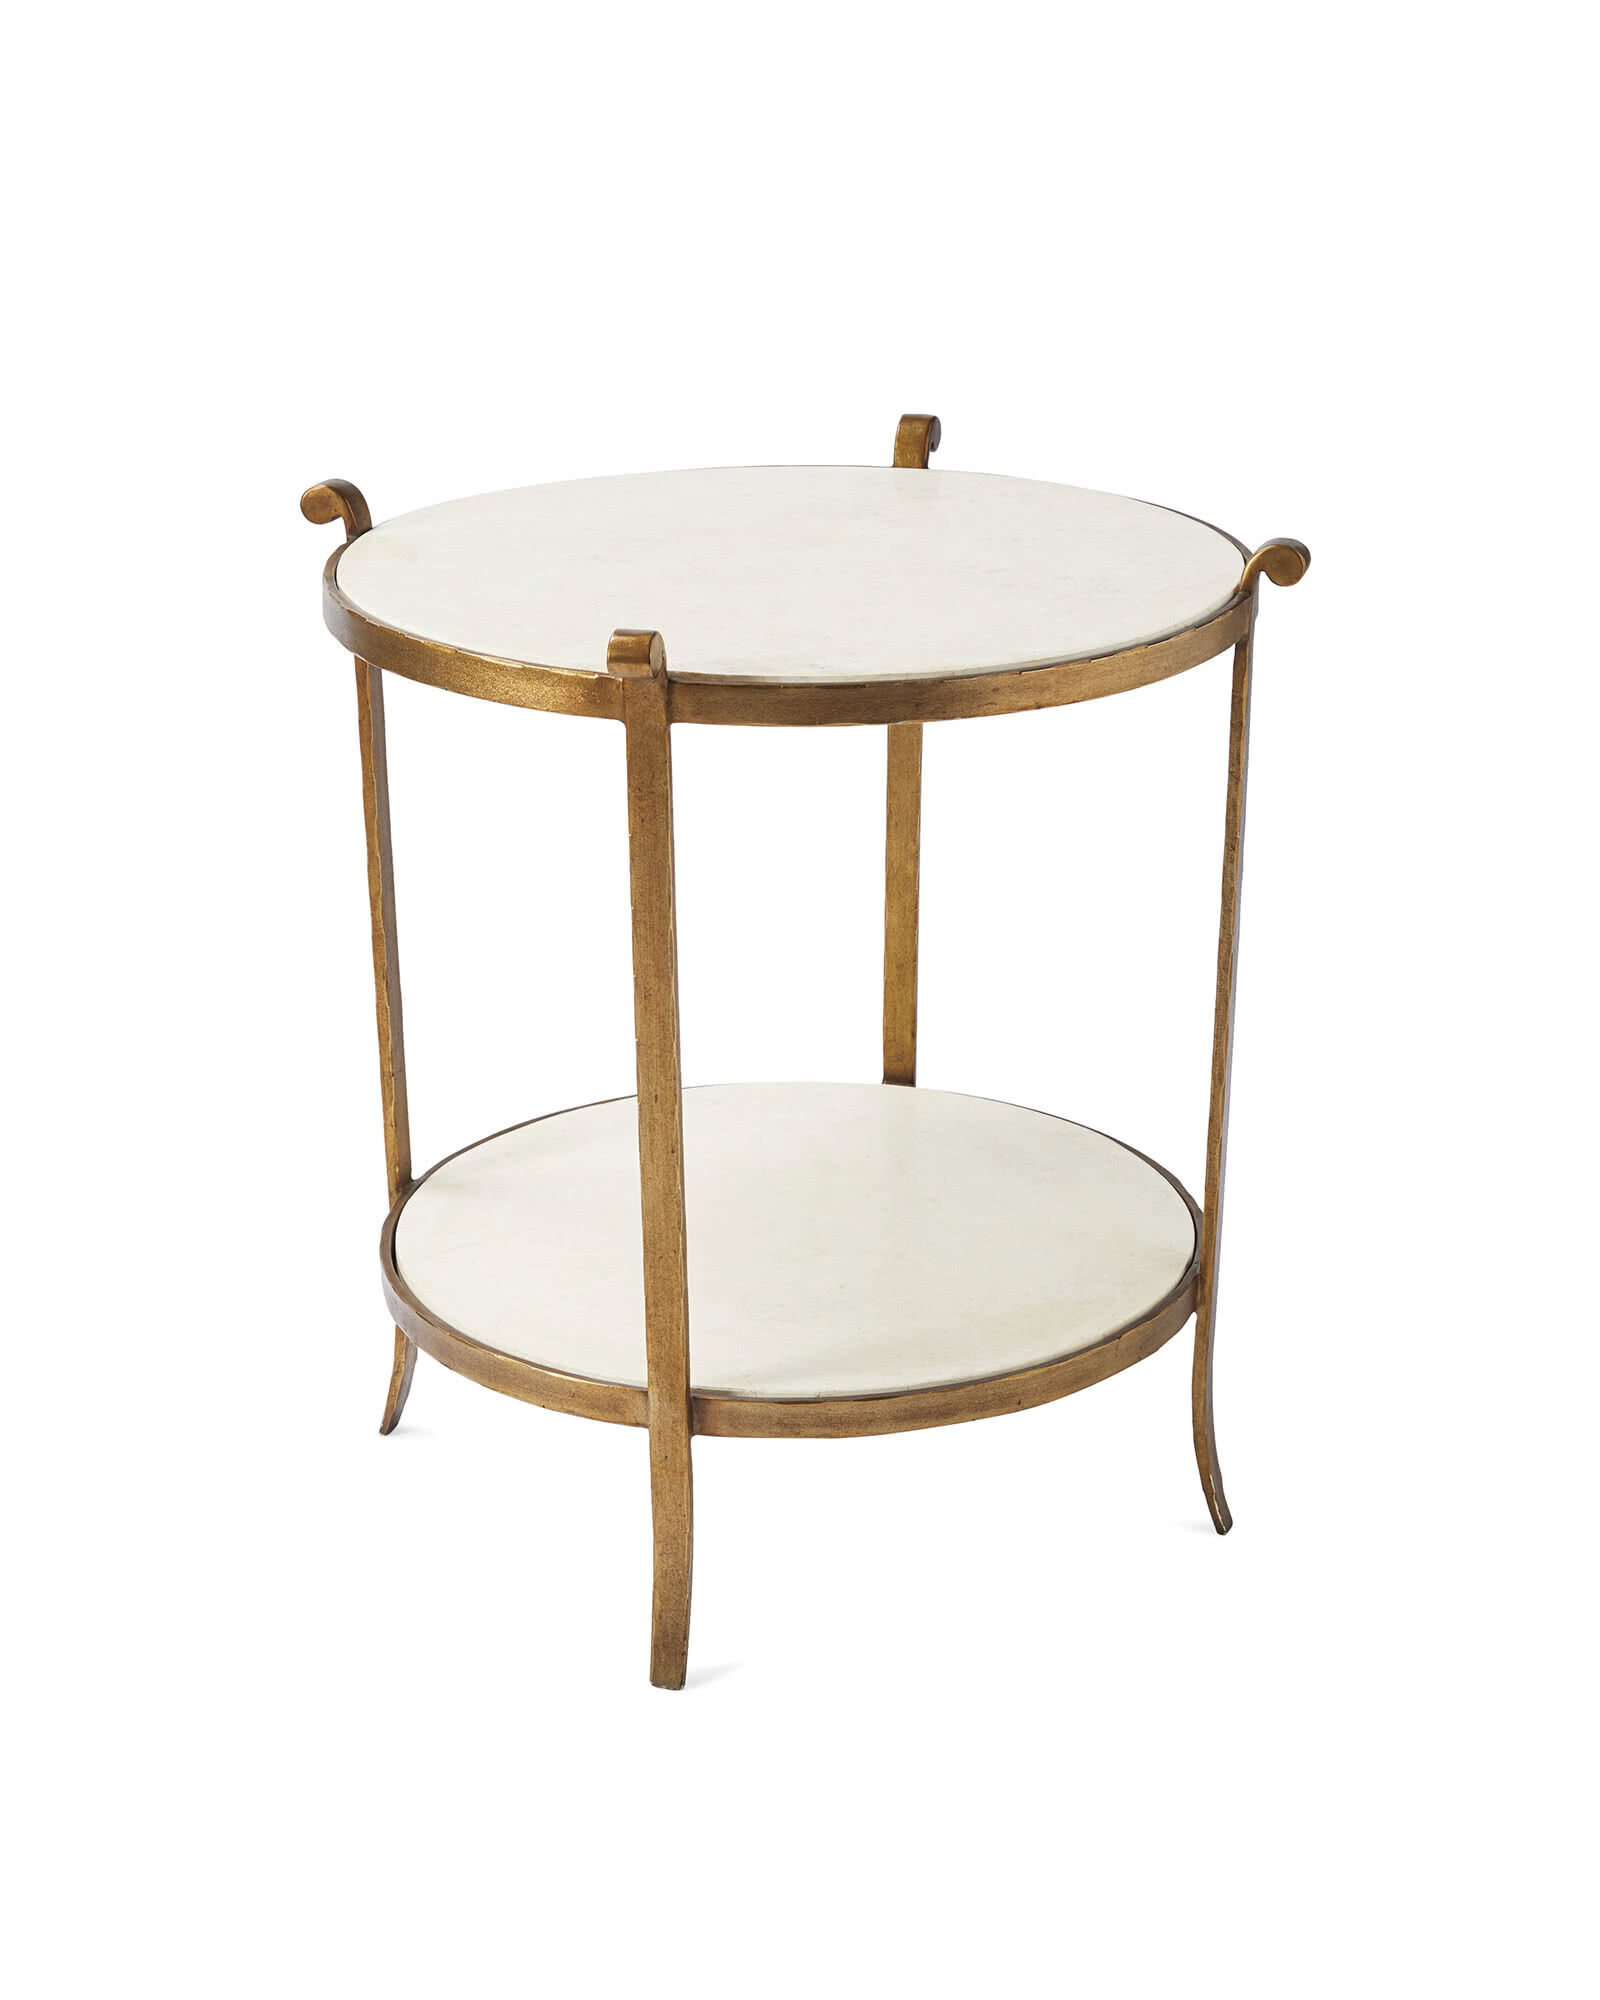 St. Germain Stone Side Table